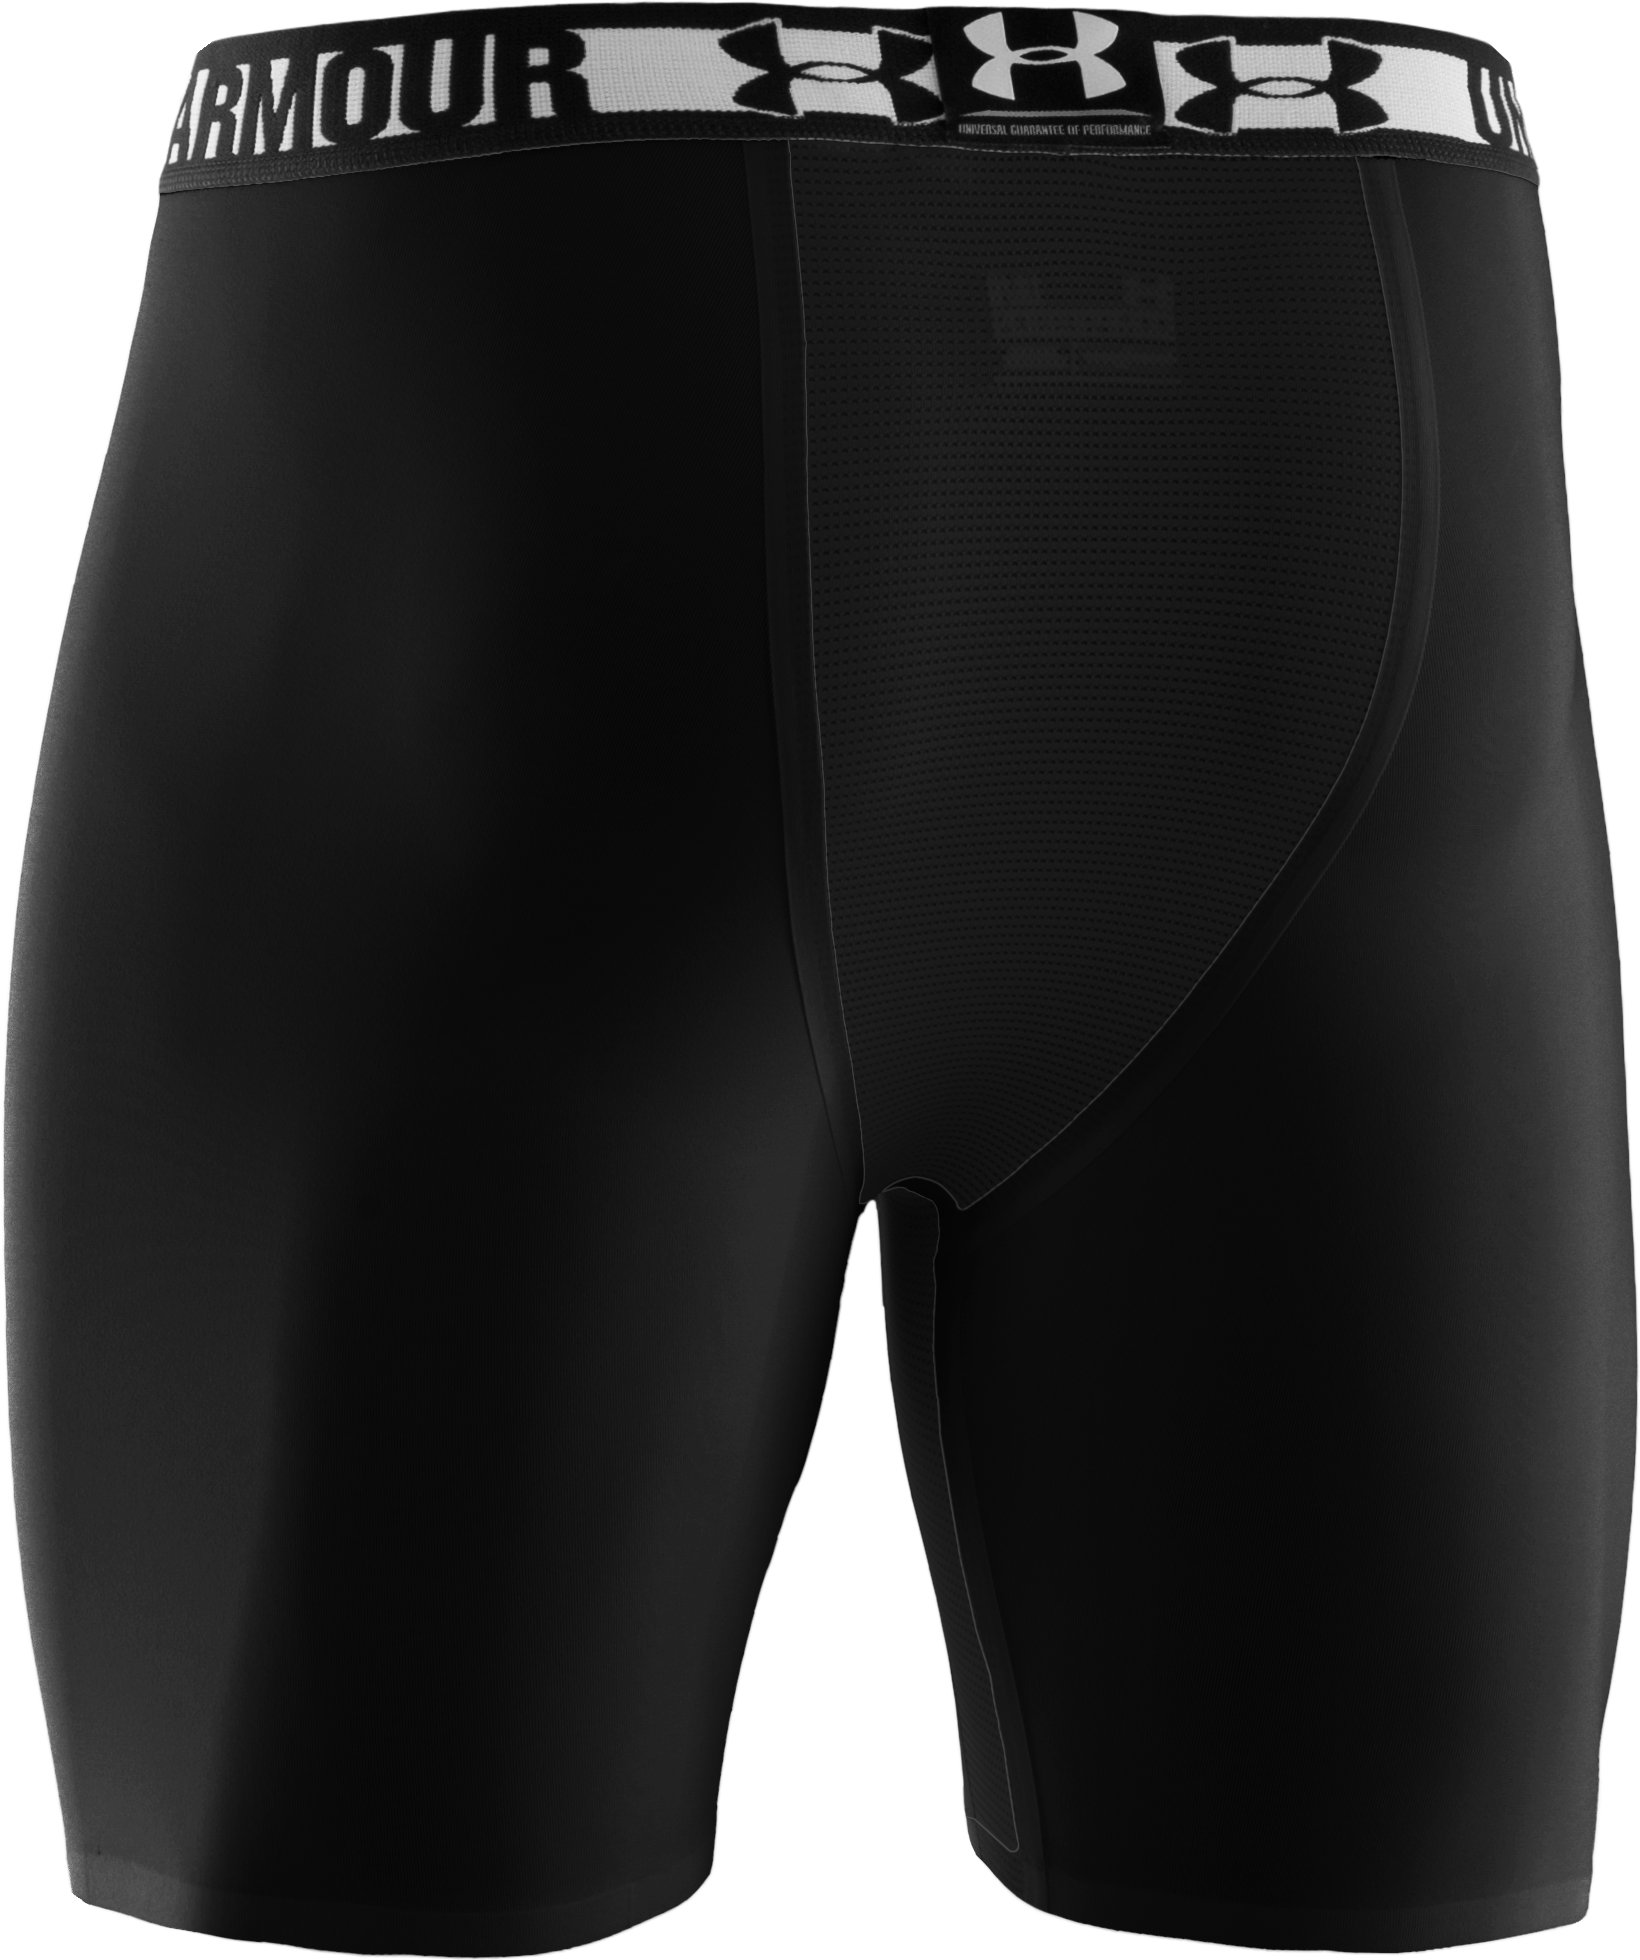 "Men's HeatGear® Dynasty Vented 6"" Compression Shorts, Black ,"